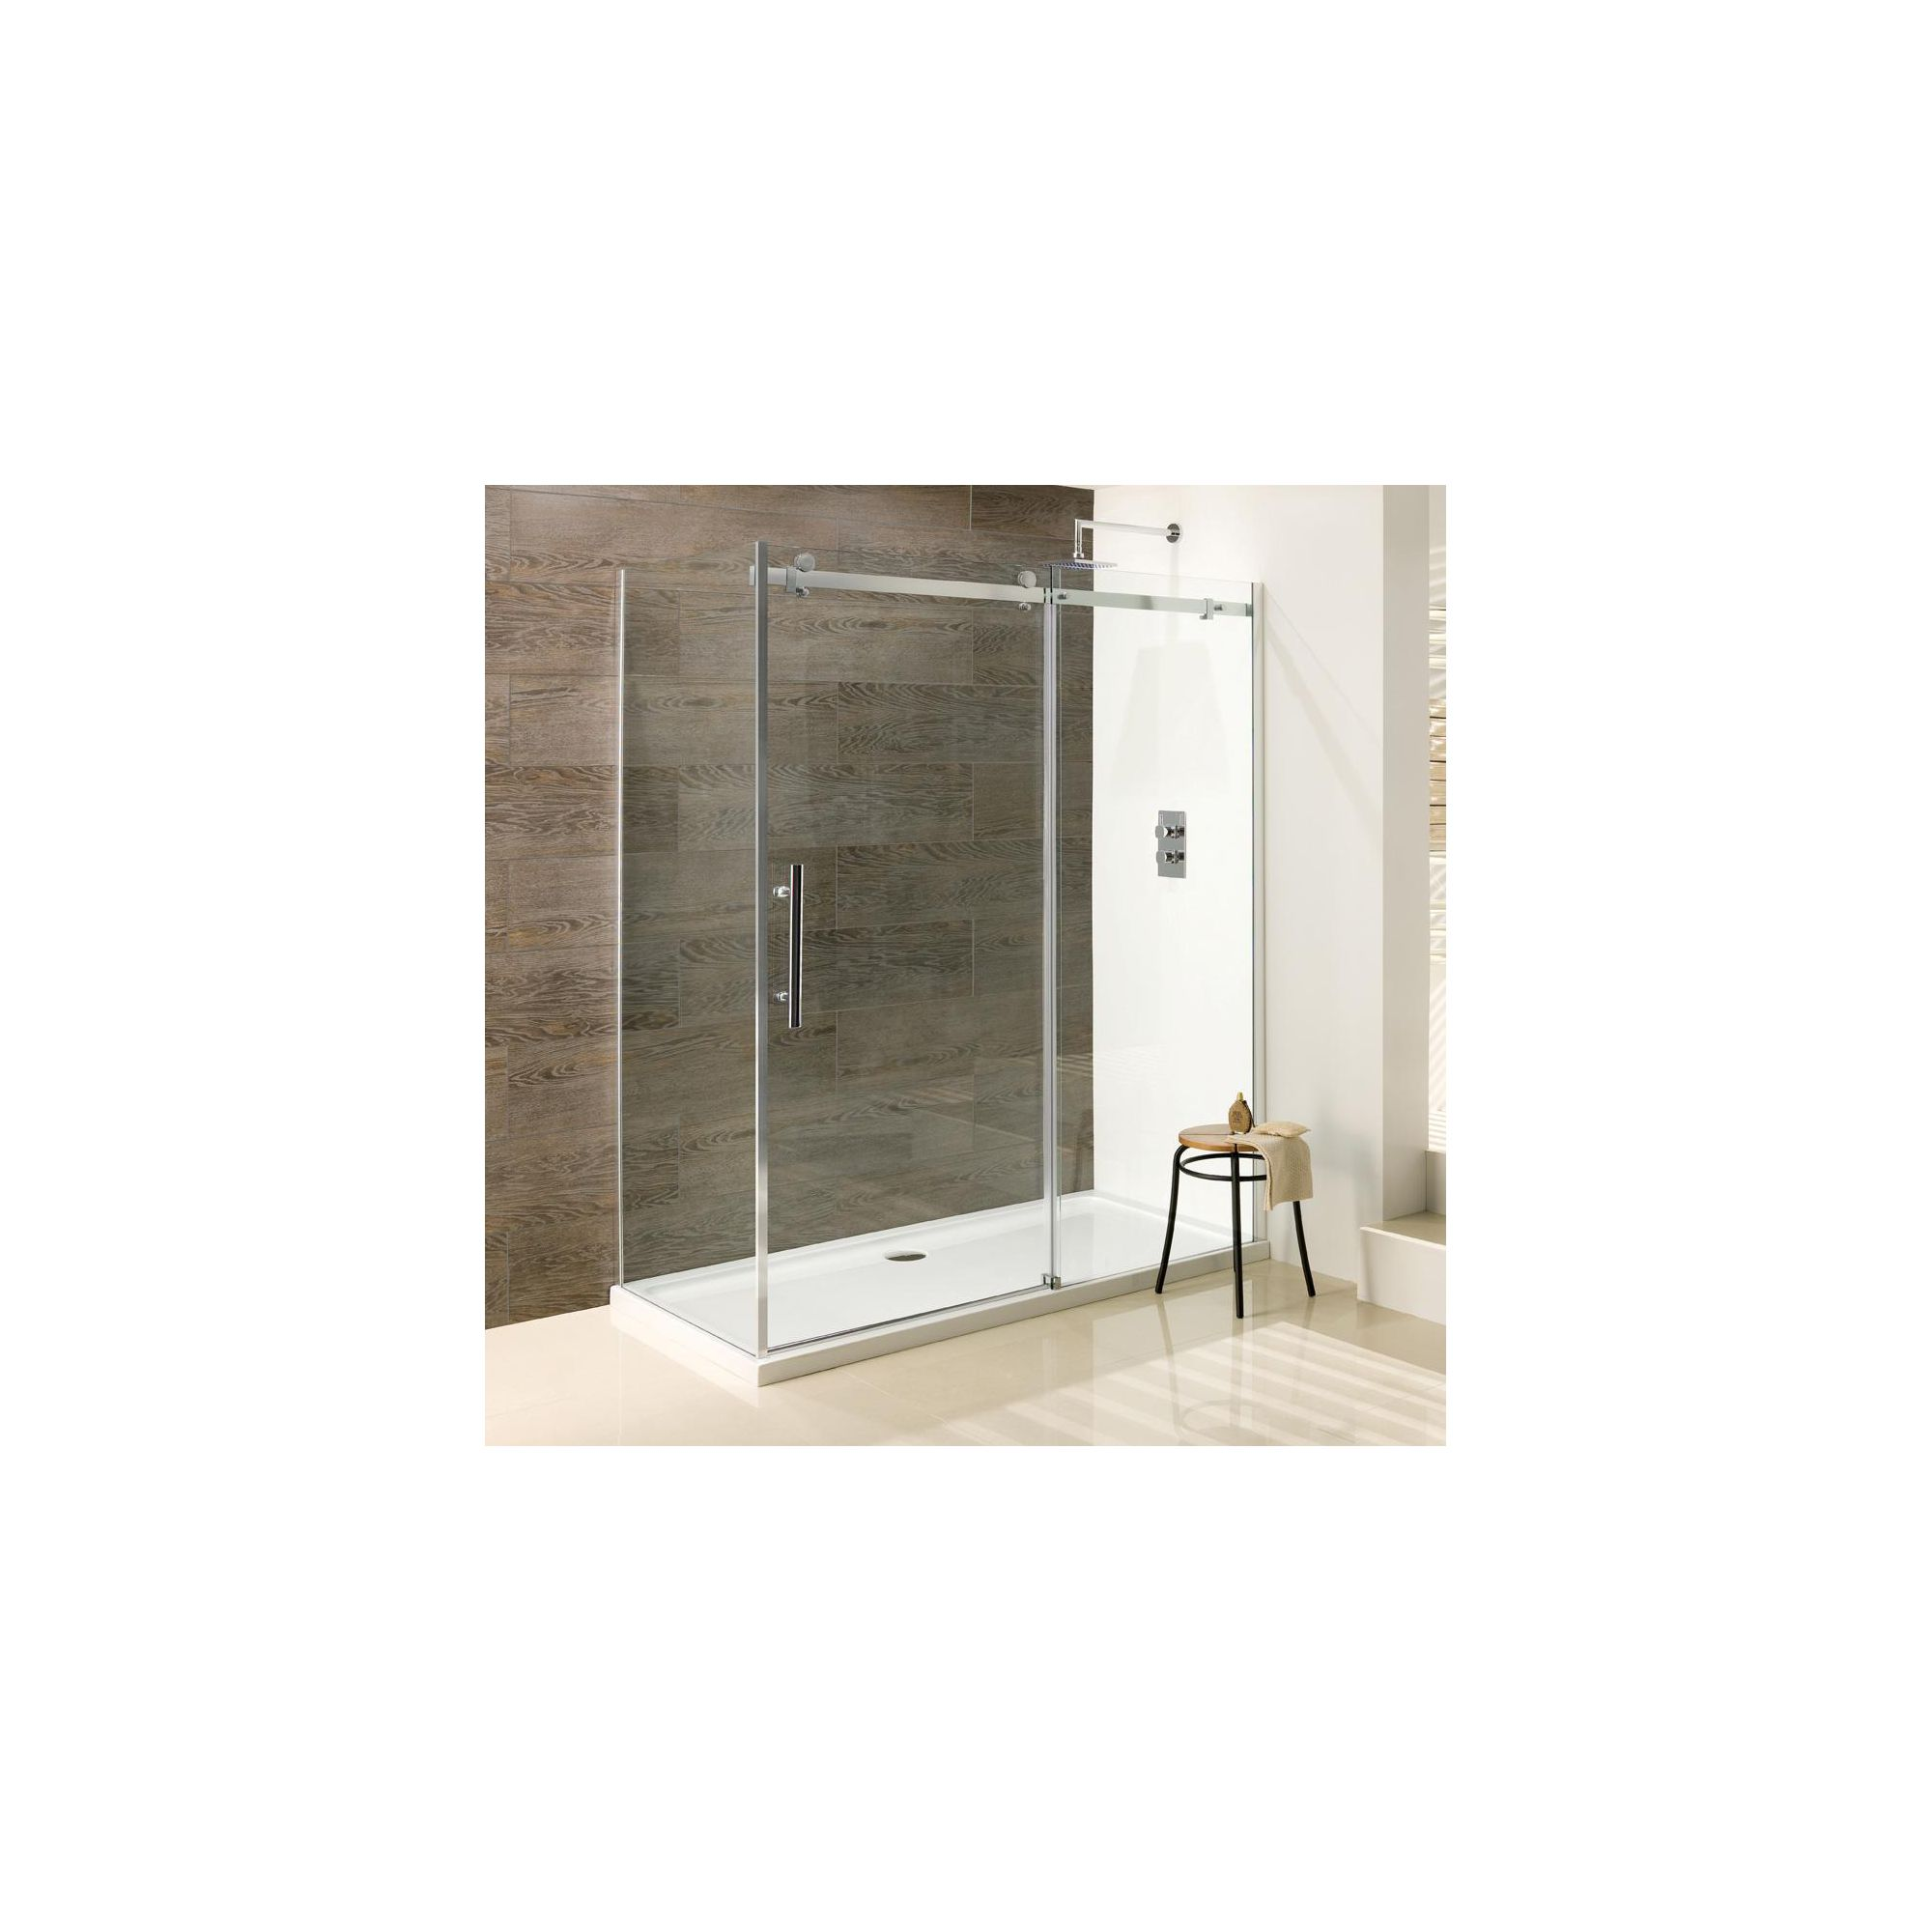 Duchy Deluxe Silver Sliding Door Shower Enclosure with Side Panel 1000mm x 900mm (Complete with Tray), 10mm Glass at Tesco Direct